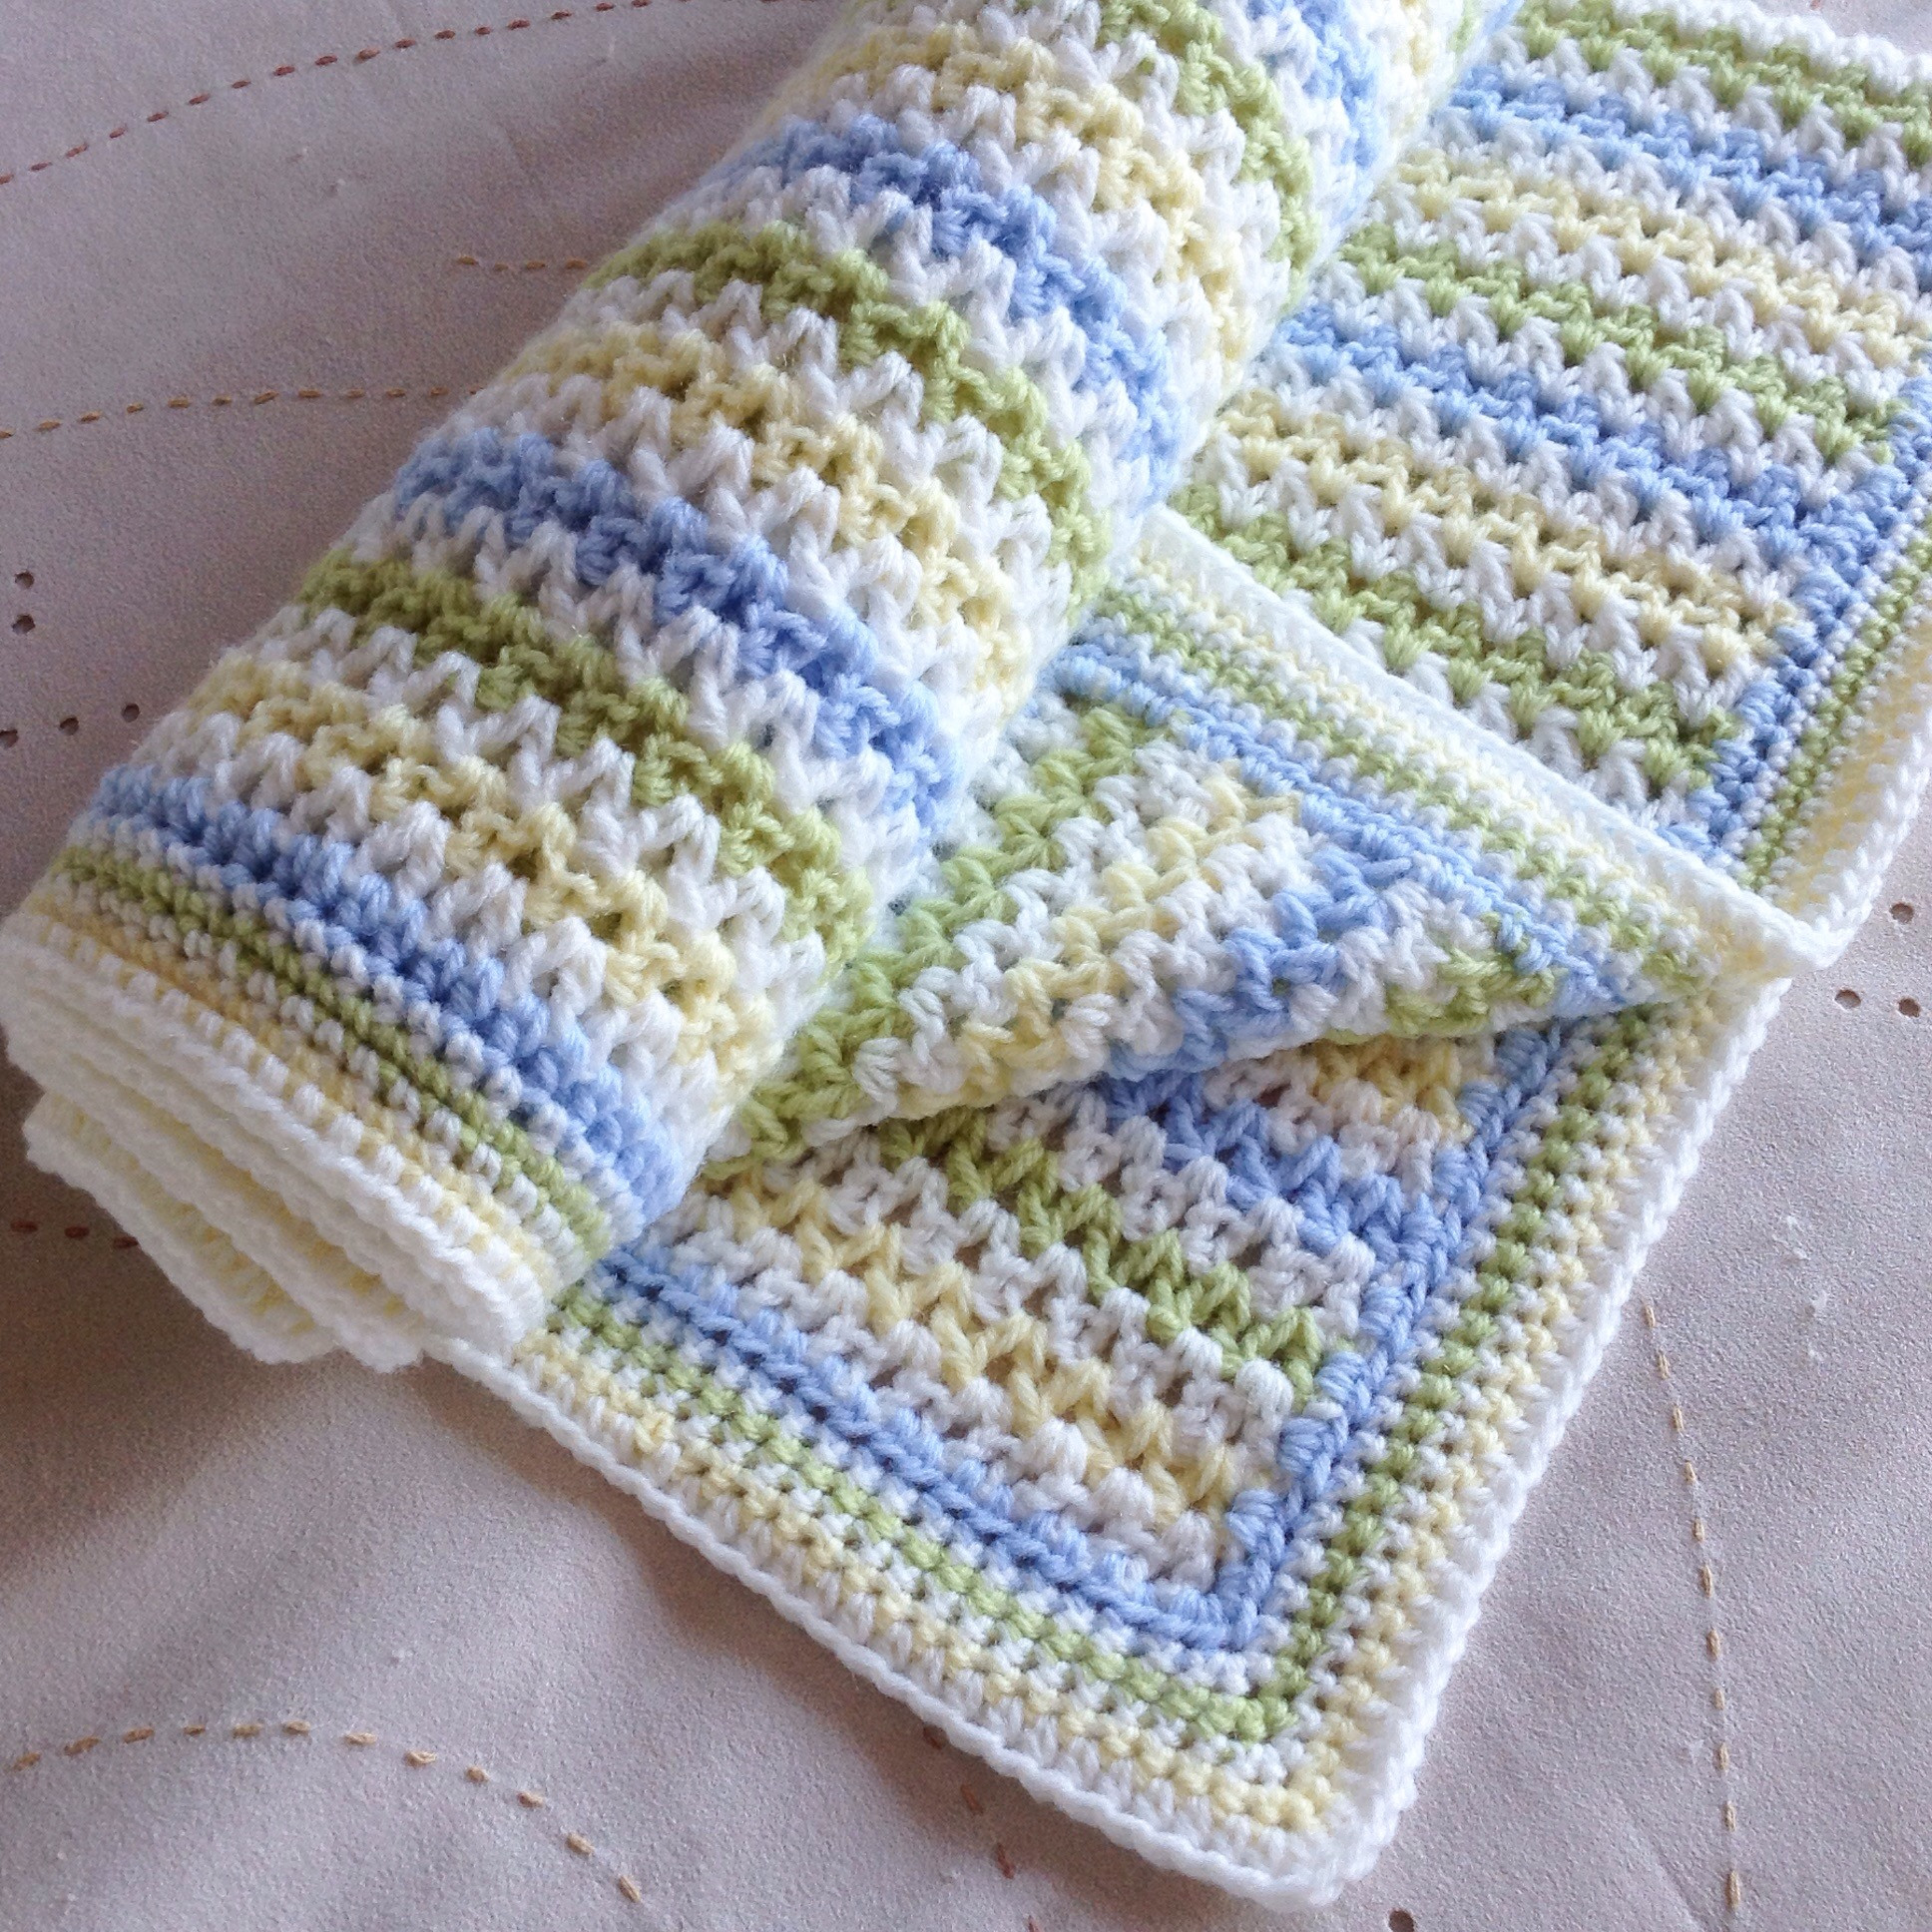 Crochet Throws Patterns Lovely Crochet Blankets – Patternpiper Of Wonderful 44 Images Crochet Throws Patterns